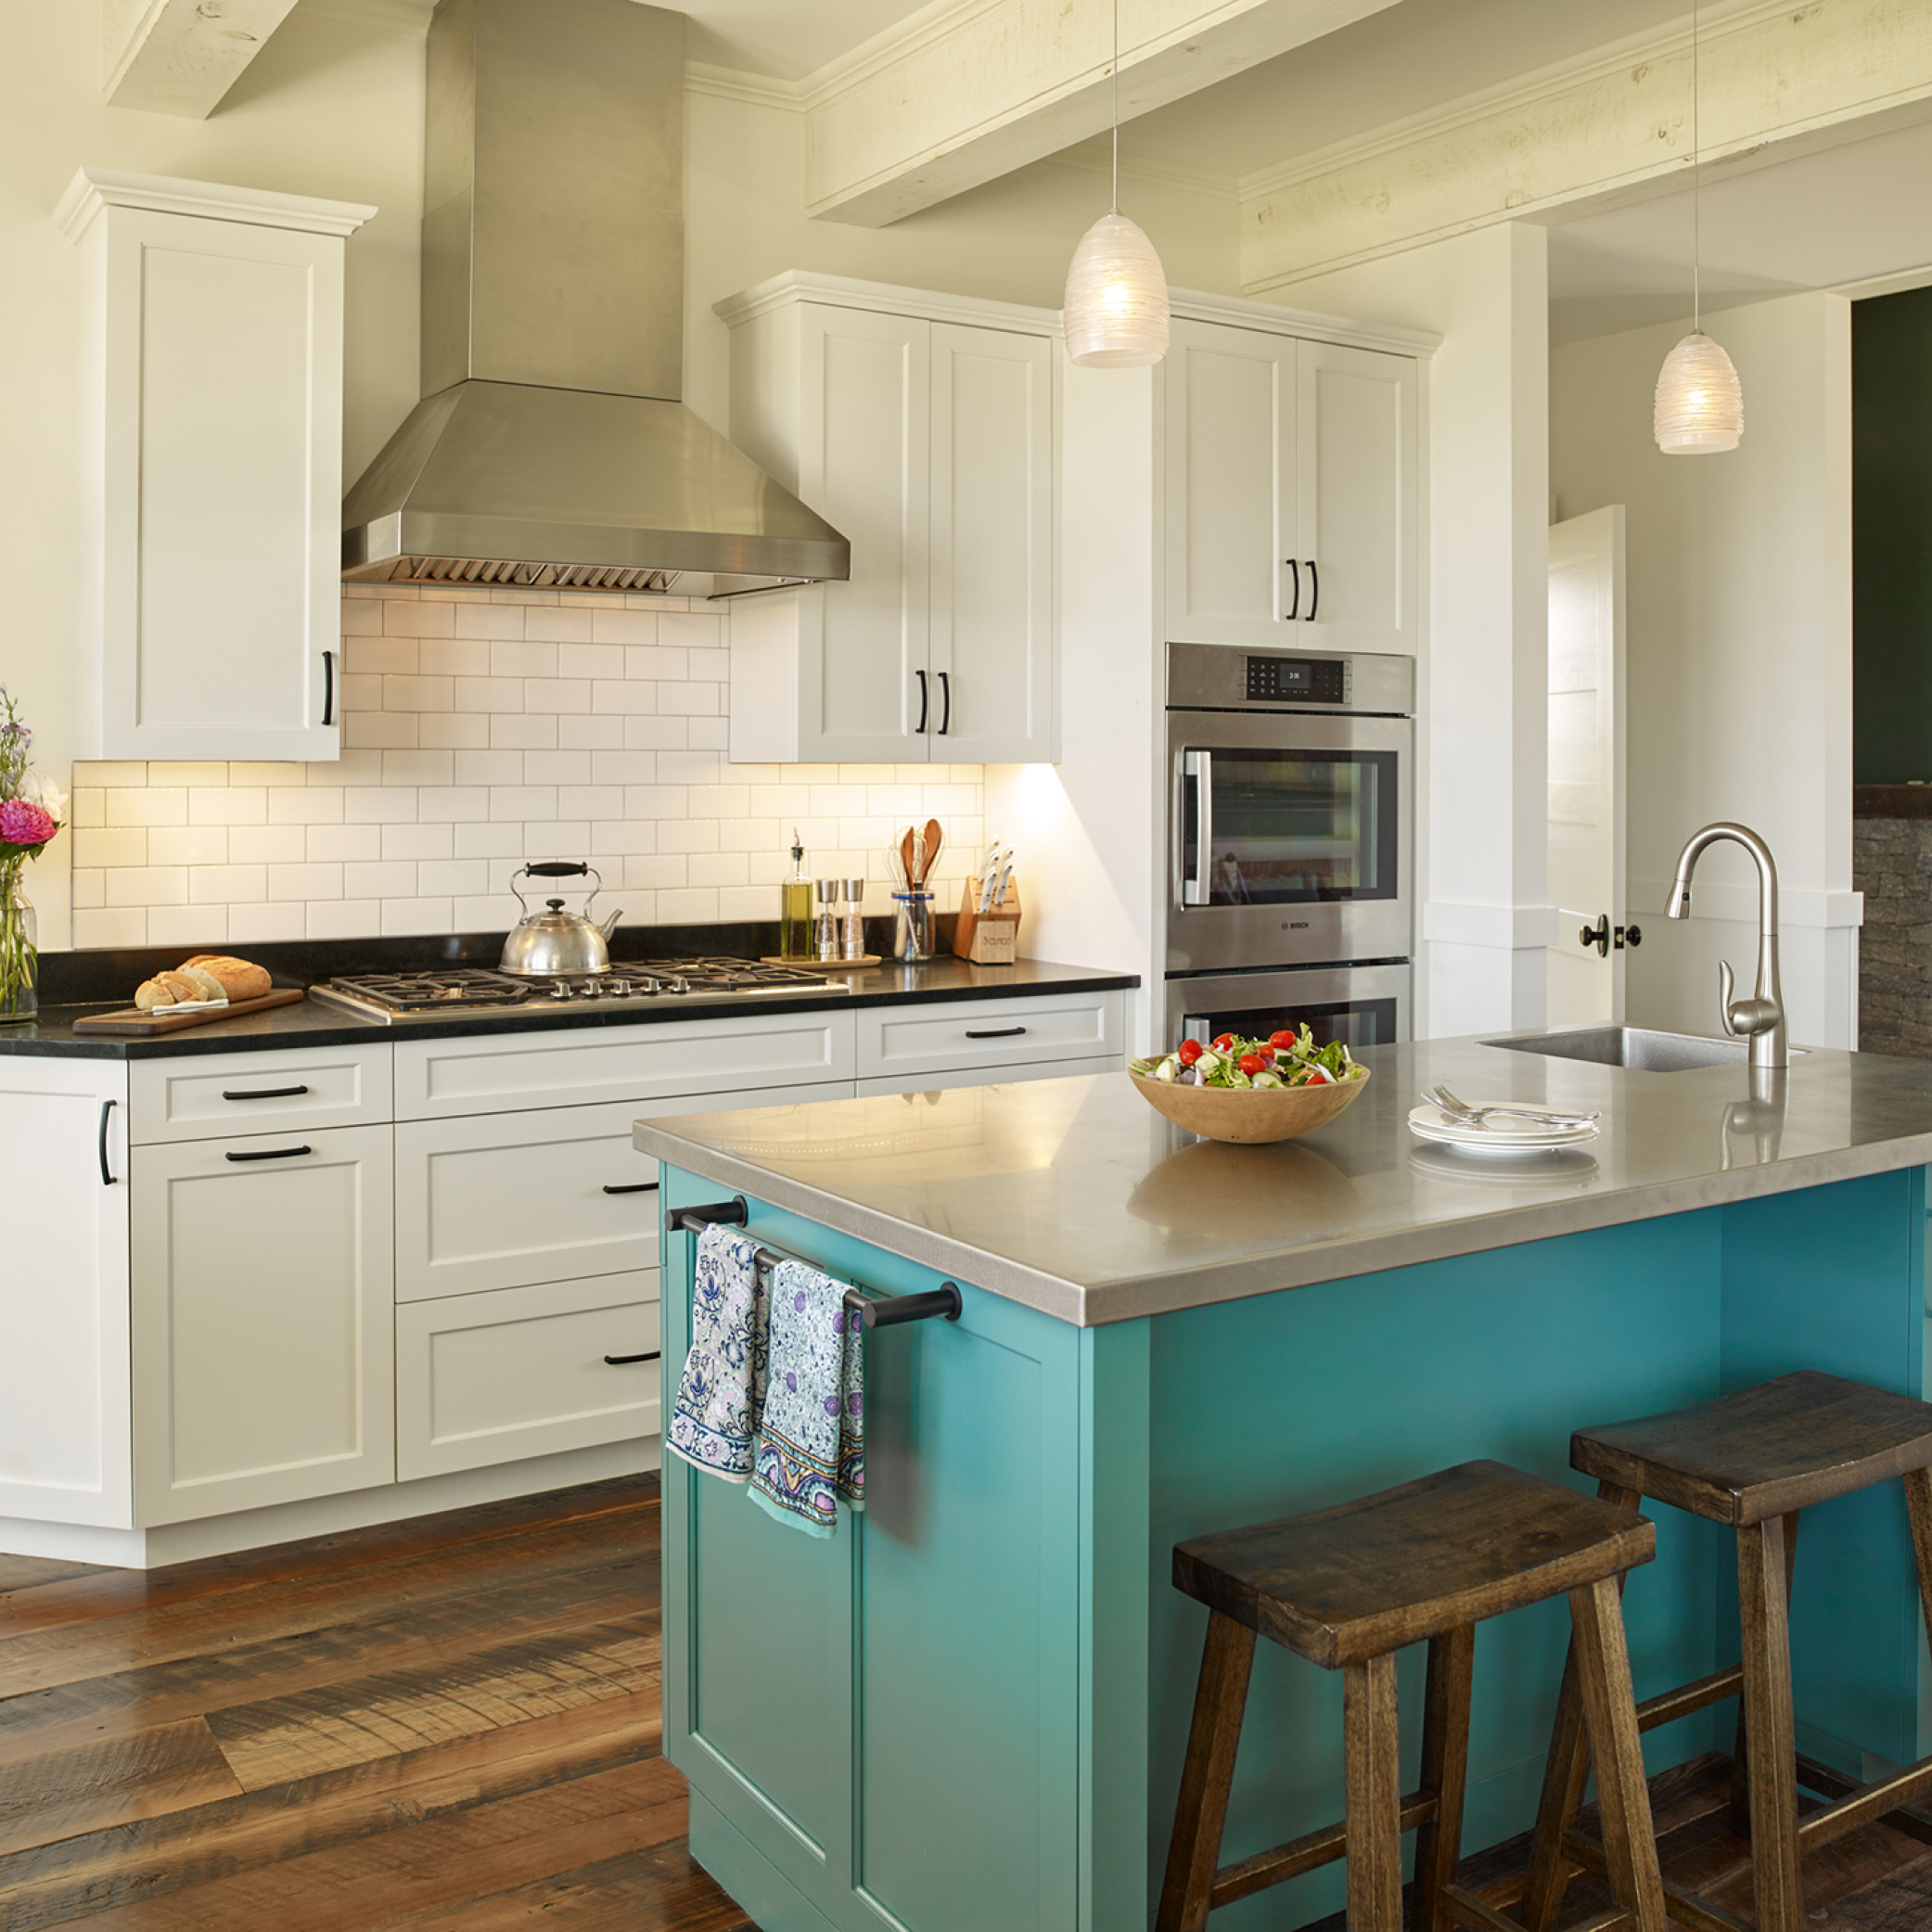 A large inviting kitchen with a beautiful blue island and hardwood floors.